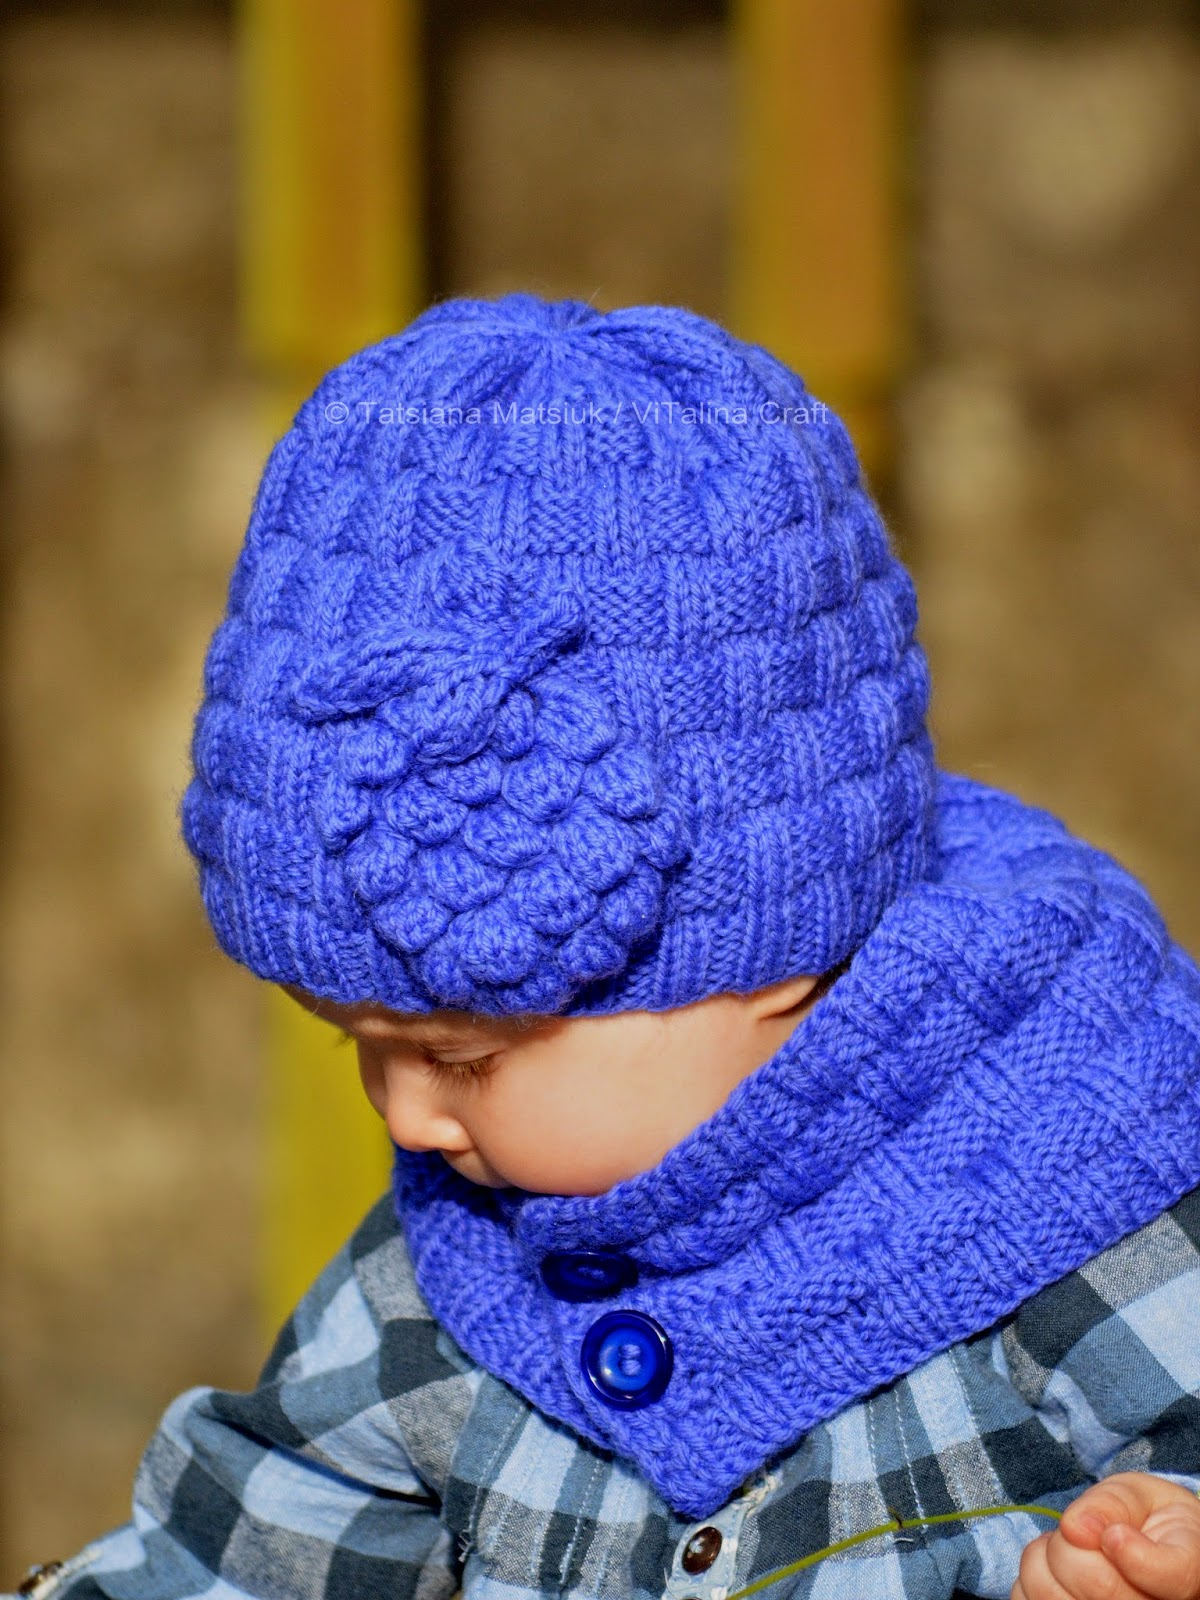 Knitting Patterns Scarf And Hat : Grapevine Hat and Scarf Knitting Pattern ViTalina Craft